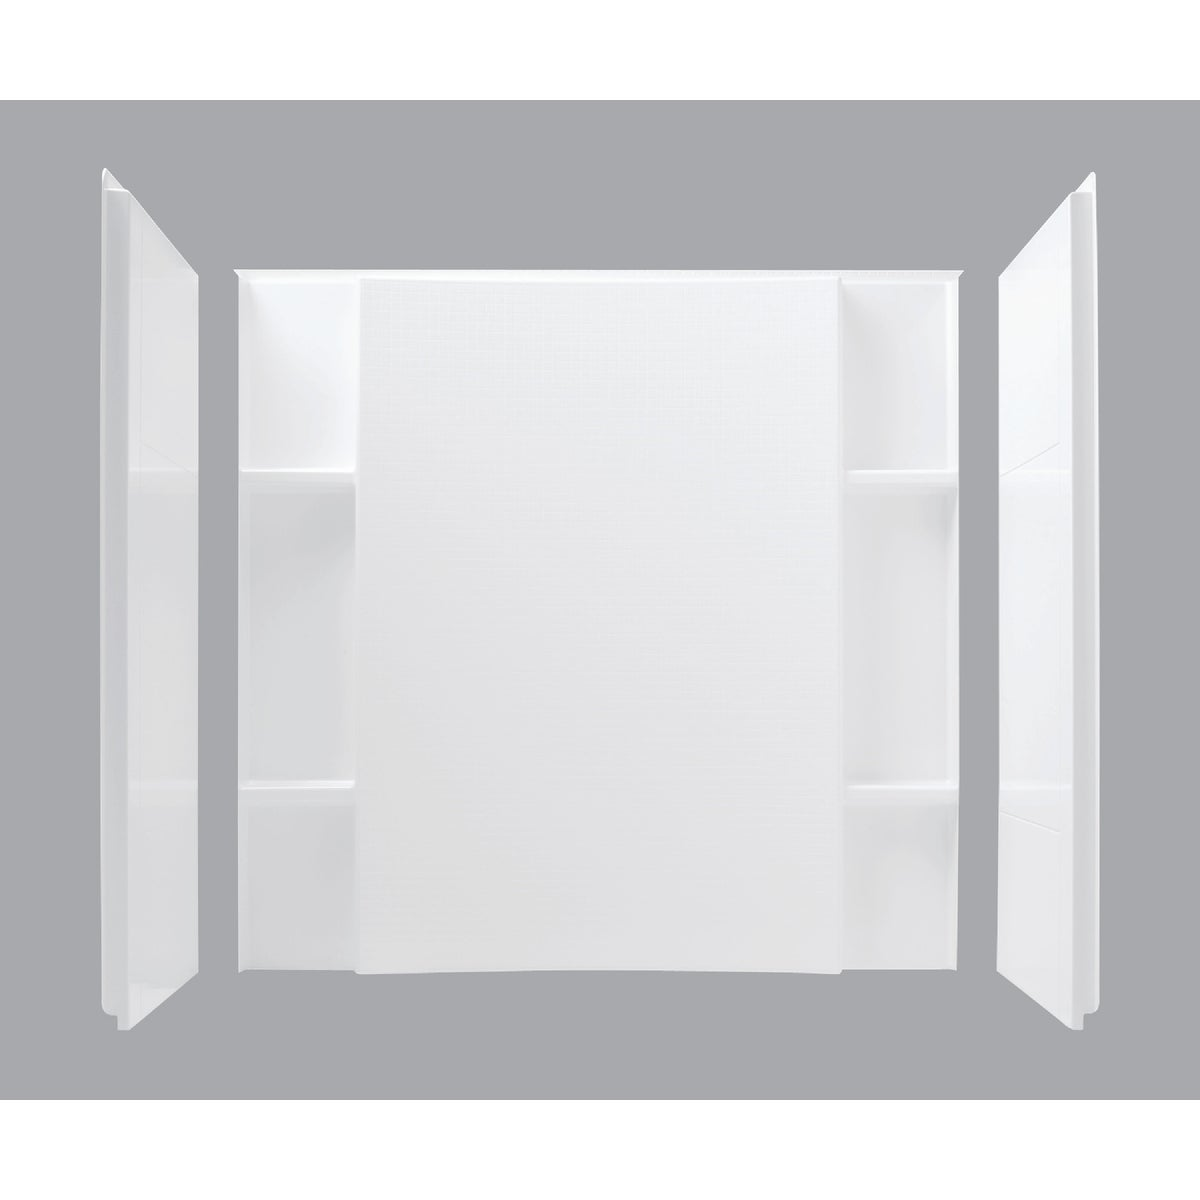 """48"""" SEATED SHOWER WALLS - 72284100-0 by Sterling Pbg/vikrell"""